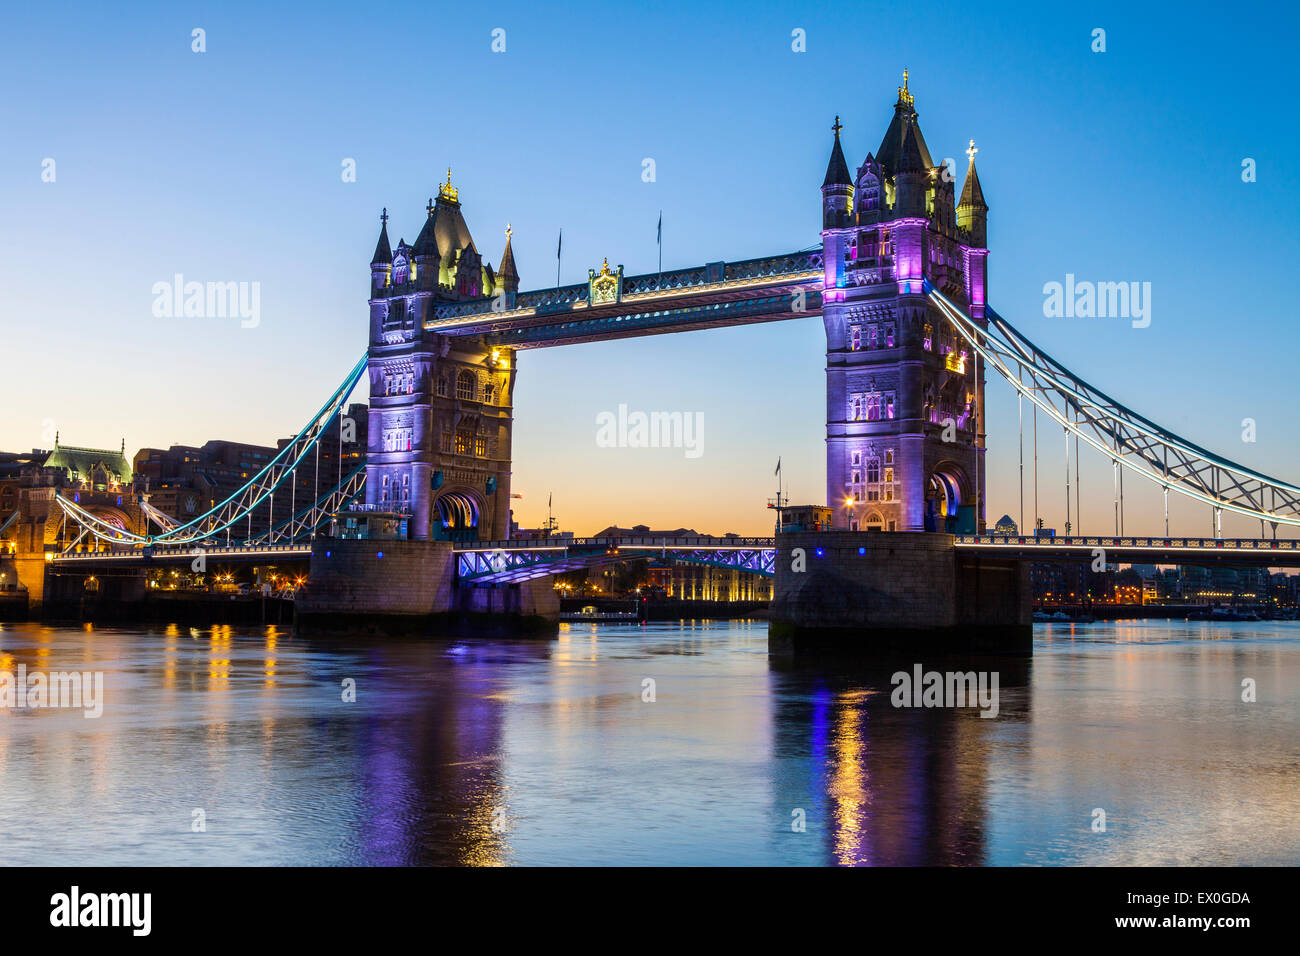 Le magnifique Tower Bridge à Londres, à l'aube. Photo Stock